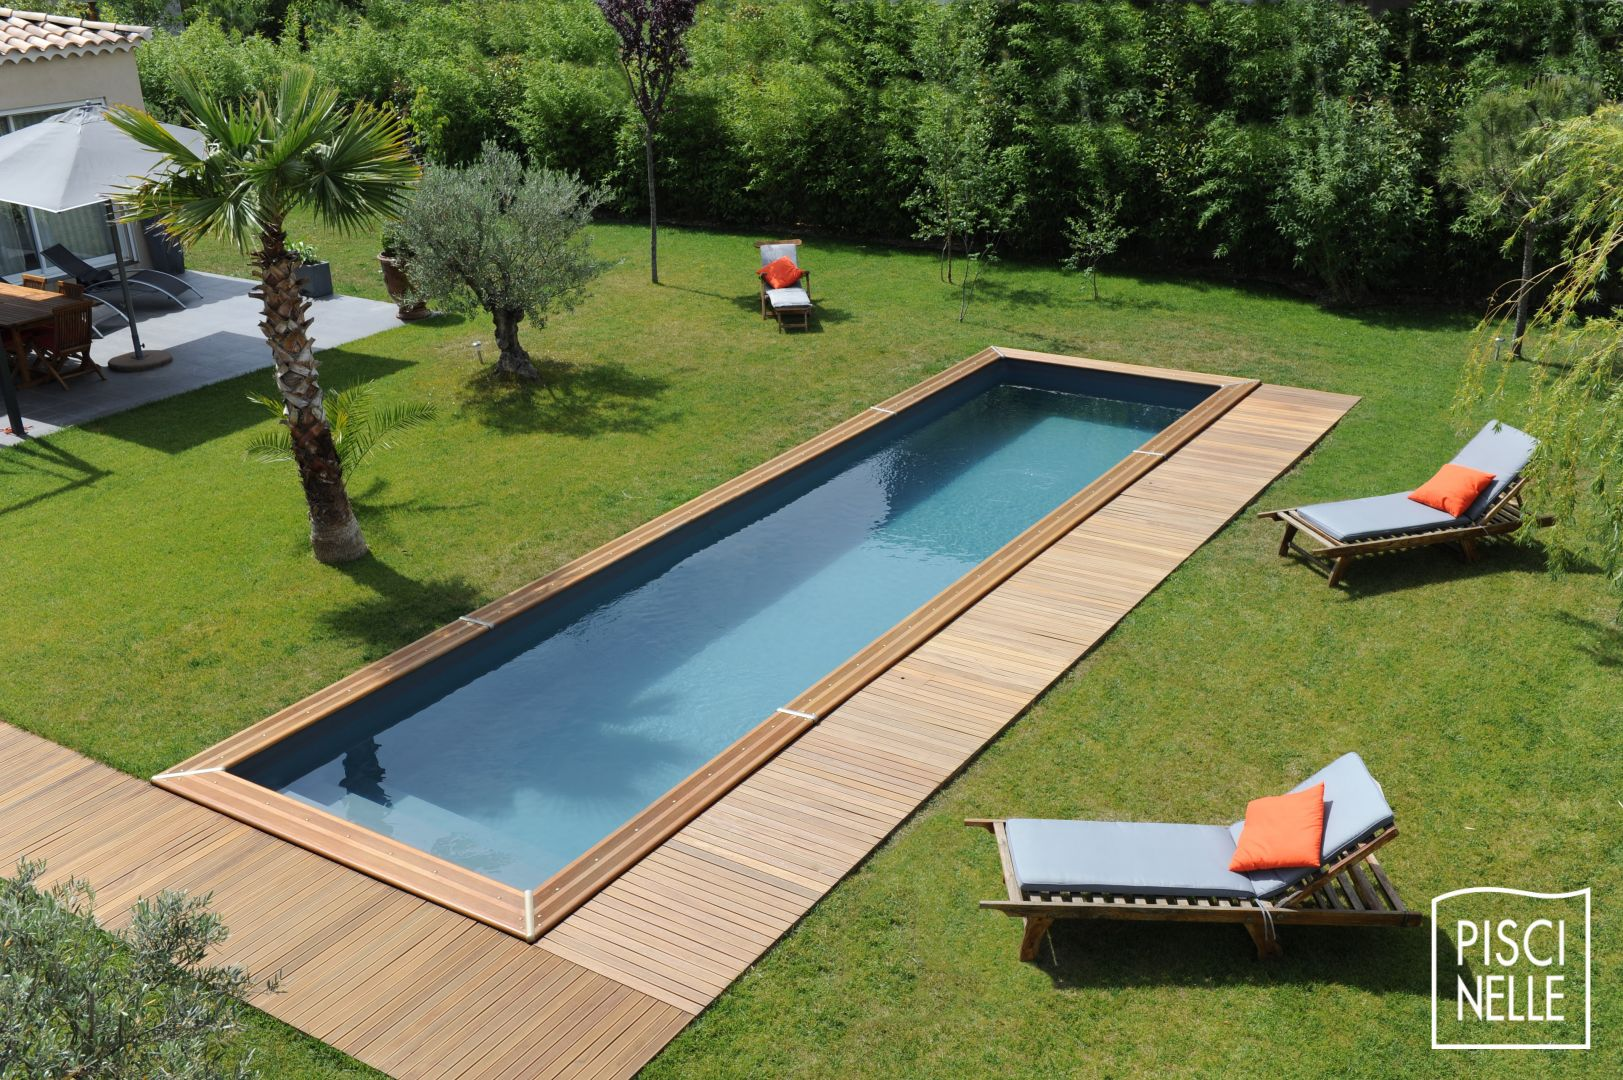 Piscine enterr e les piscines enterr es en kit par for Piscine bois canaries